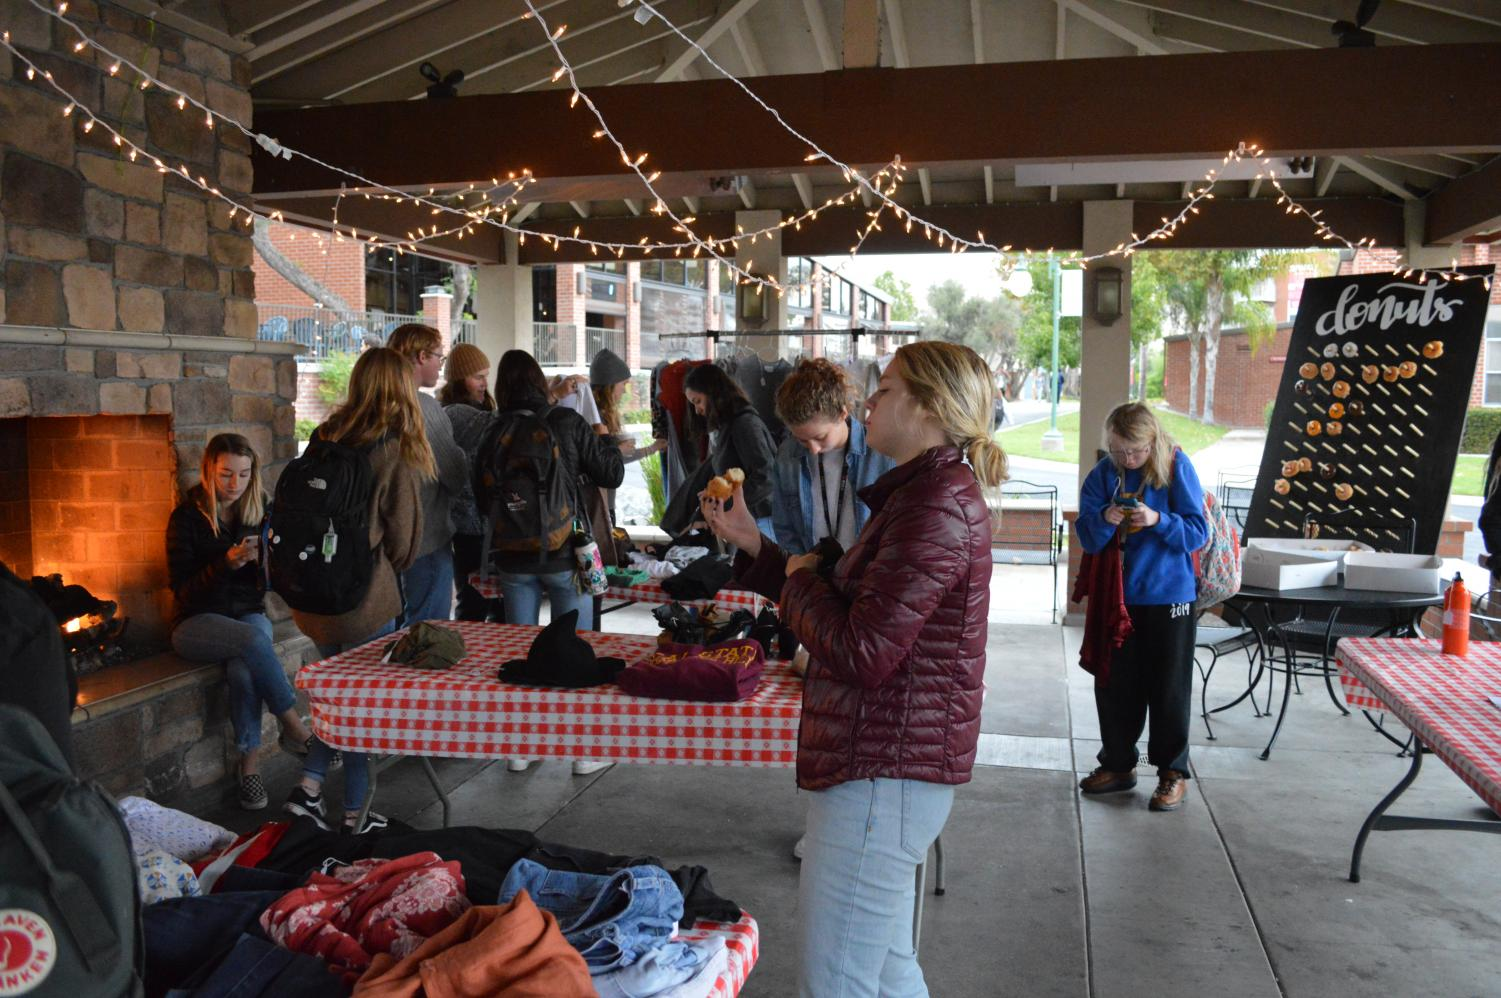 The Breaking Chains club hosted a pop-up thrift shop to raise awareness about human trafficking.